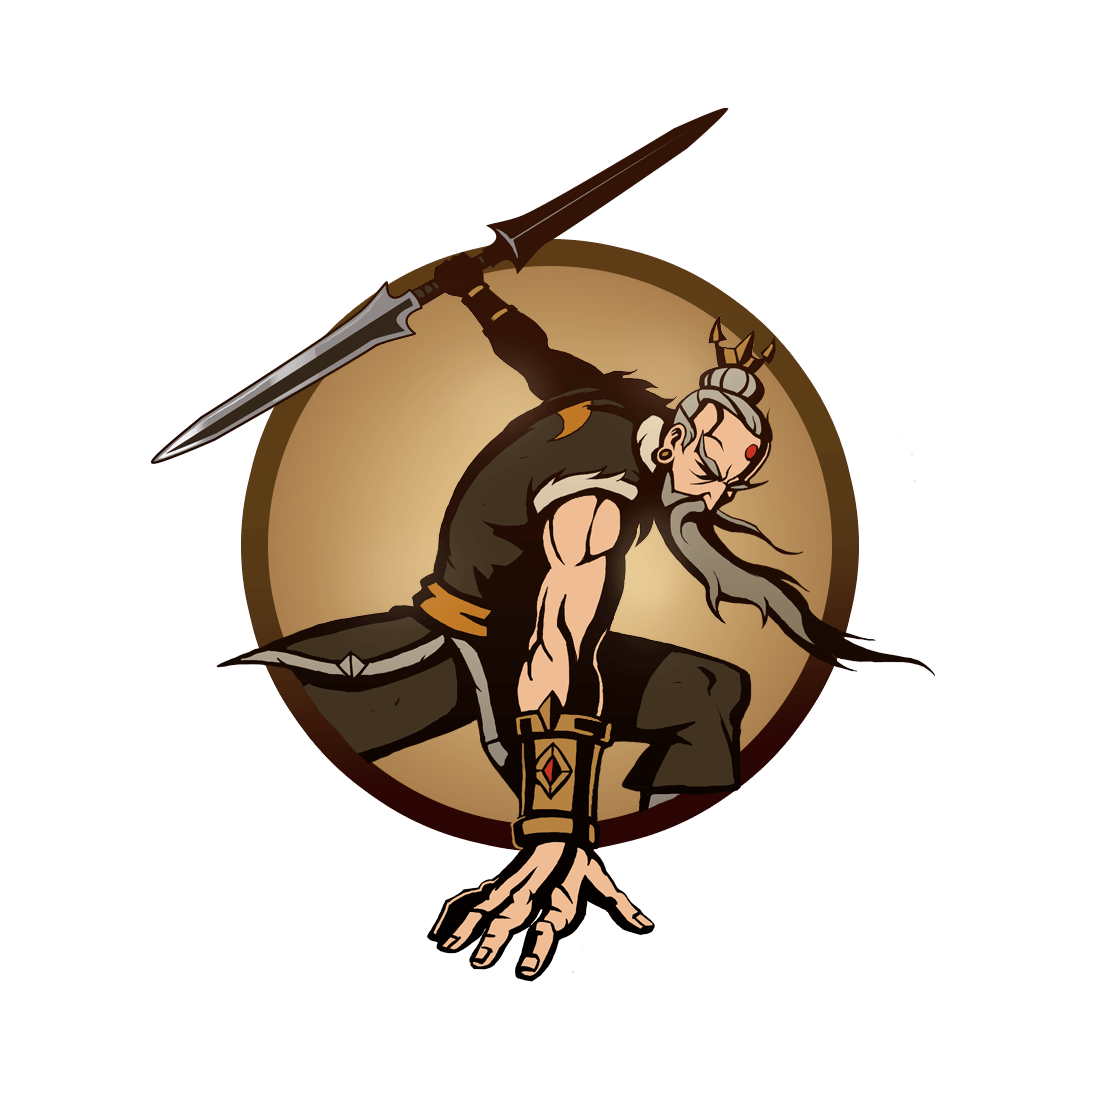 Image glaive png shadow. Honest clipart two man